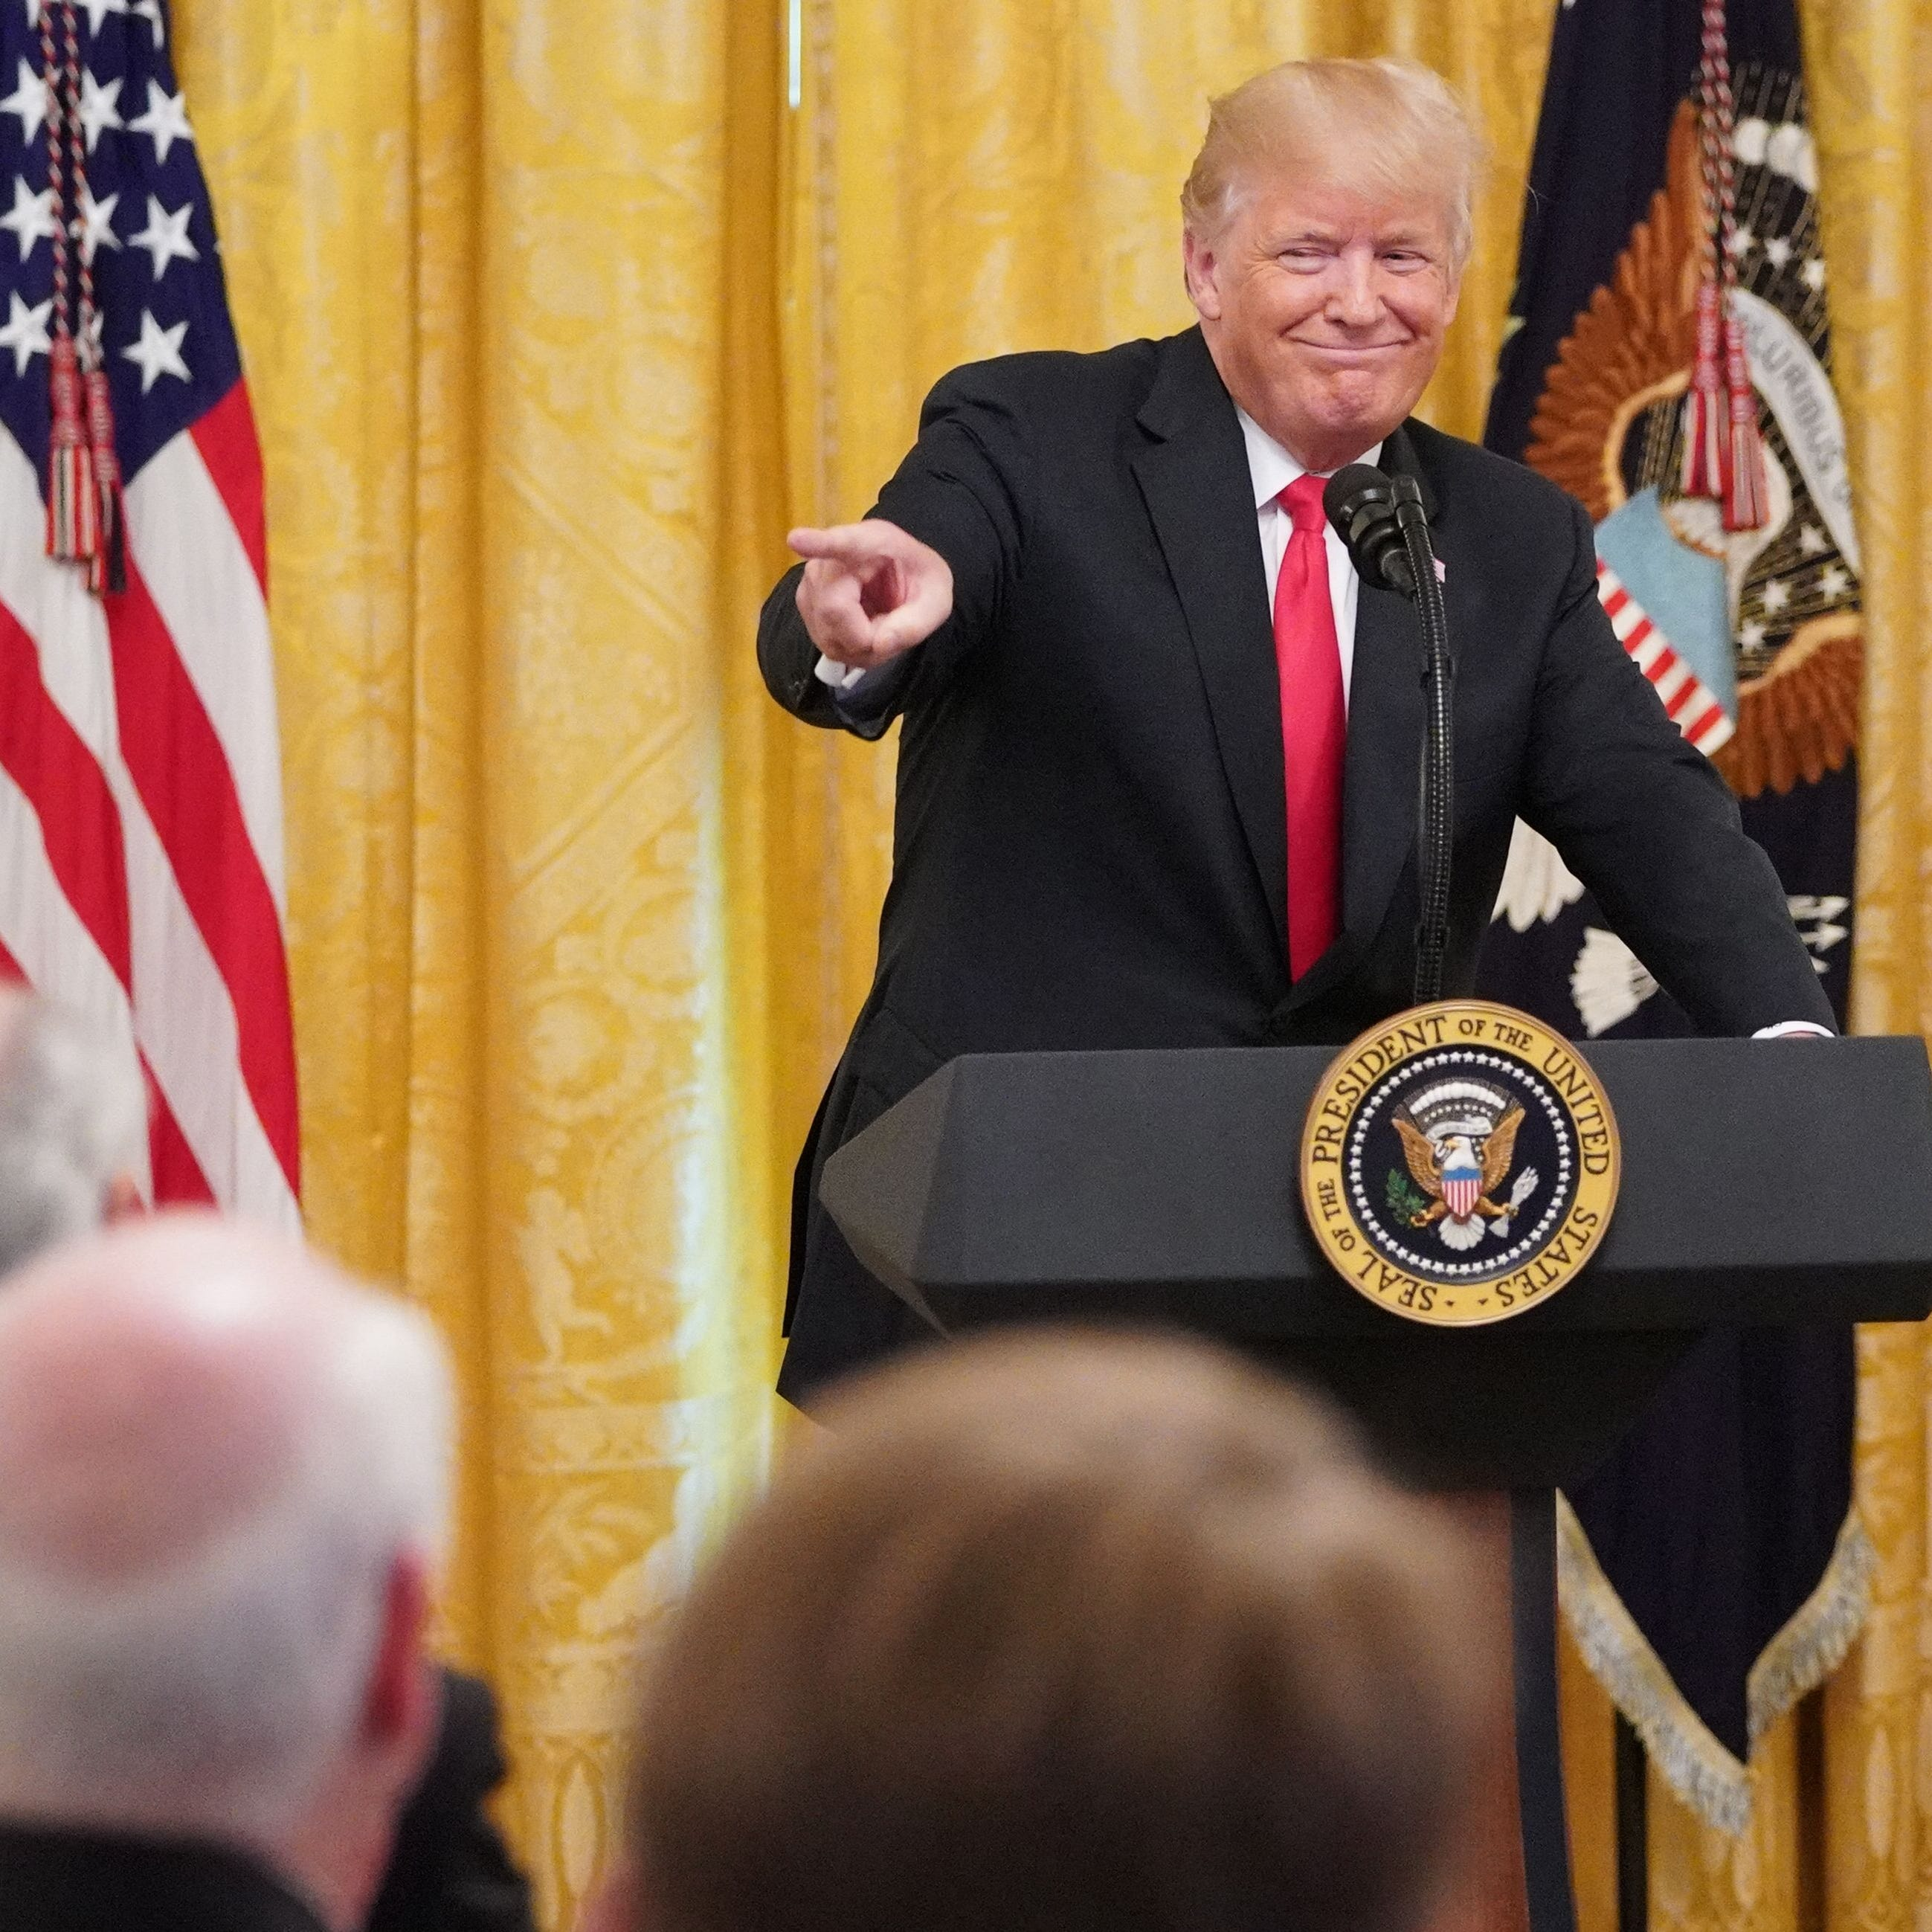 Was Gov. Doug Ducey mortified by Donald Trump's offensive gaffe at White House event?